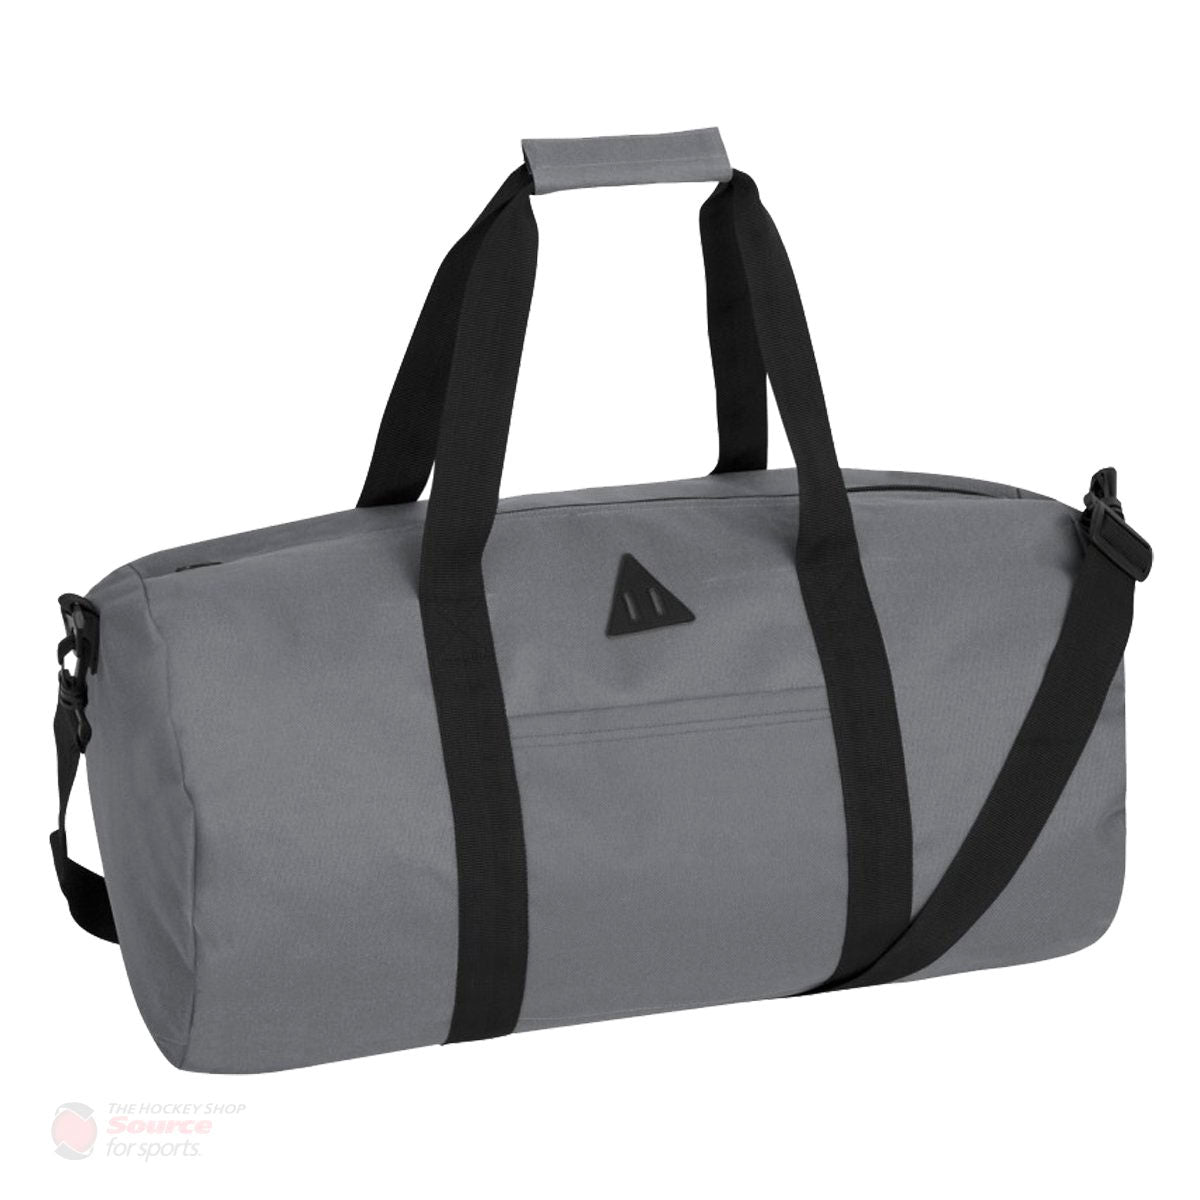 ATC Retro Barrel Duffle Bag